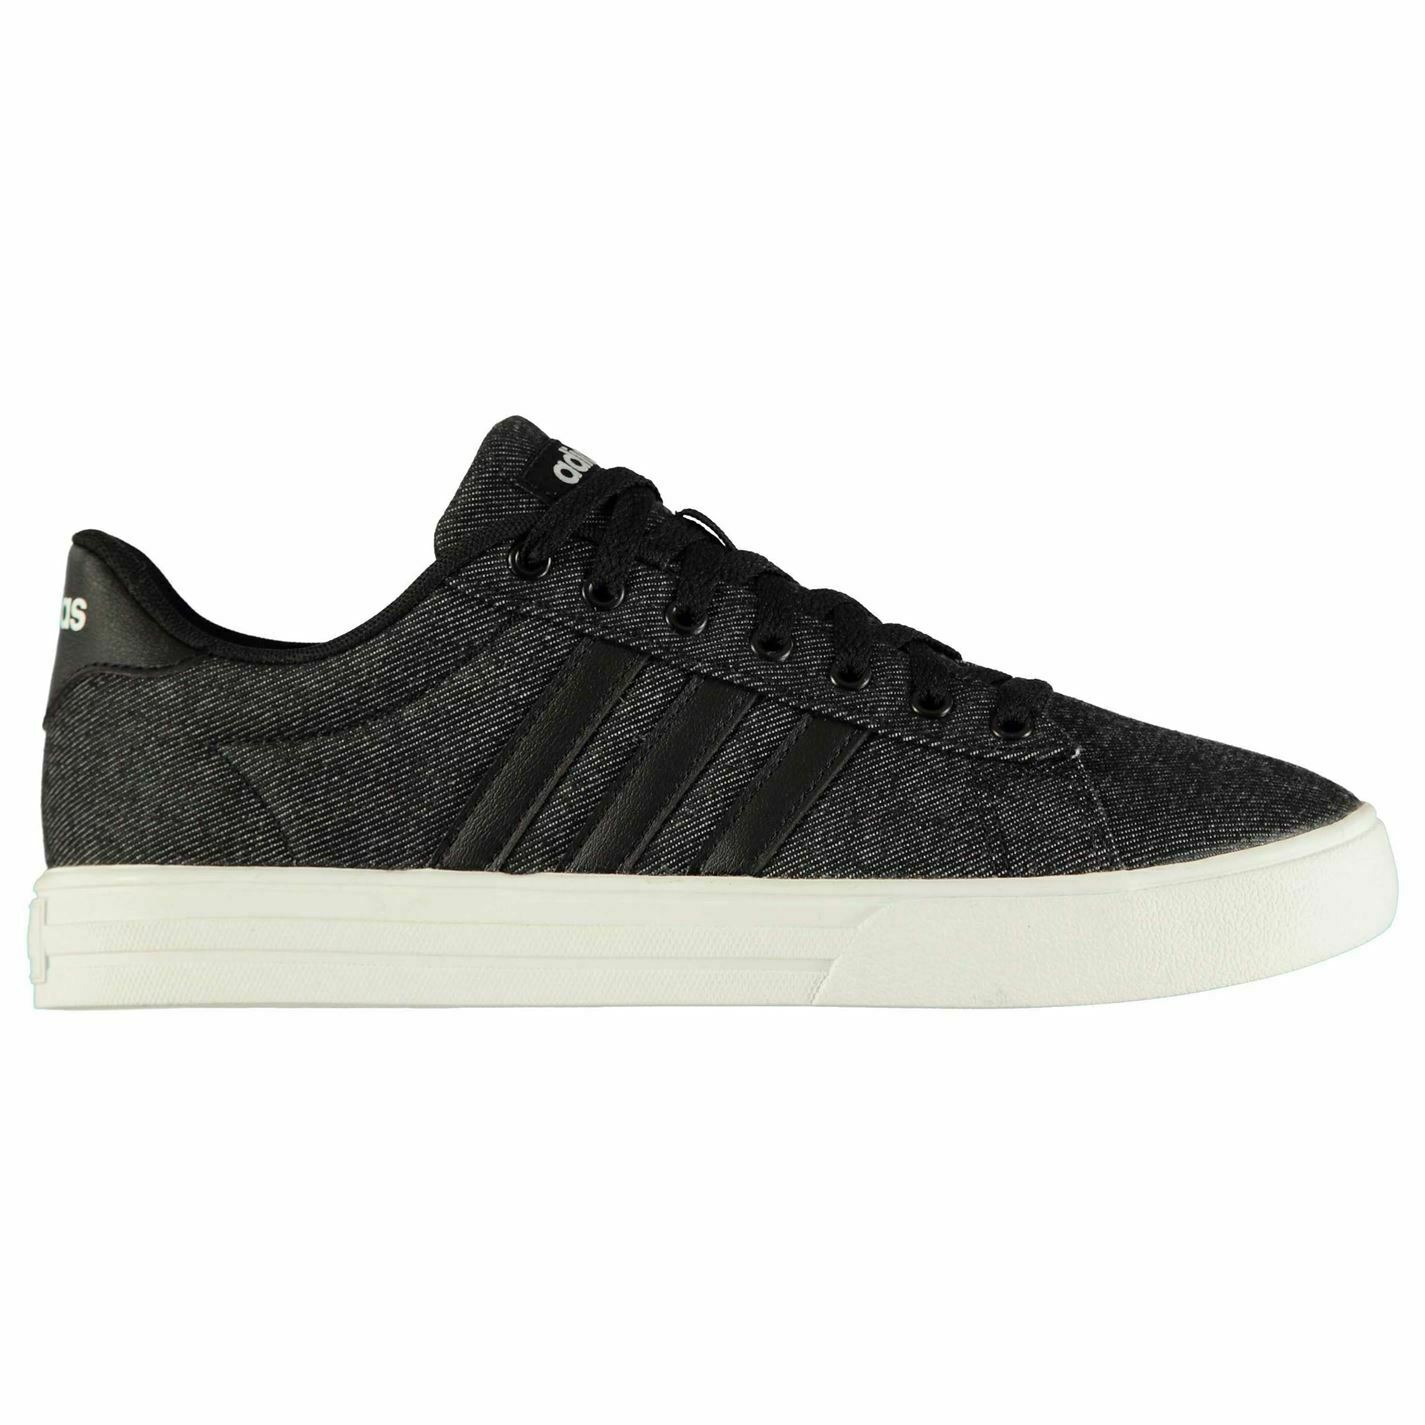 Adidas Mens Daily 2.0 Canvas Running Sports shoes Trainers Pumps Sneakers